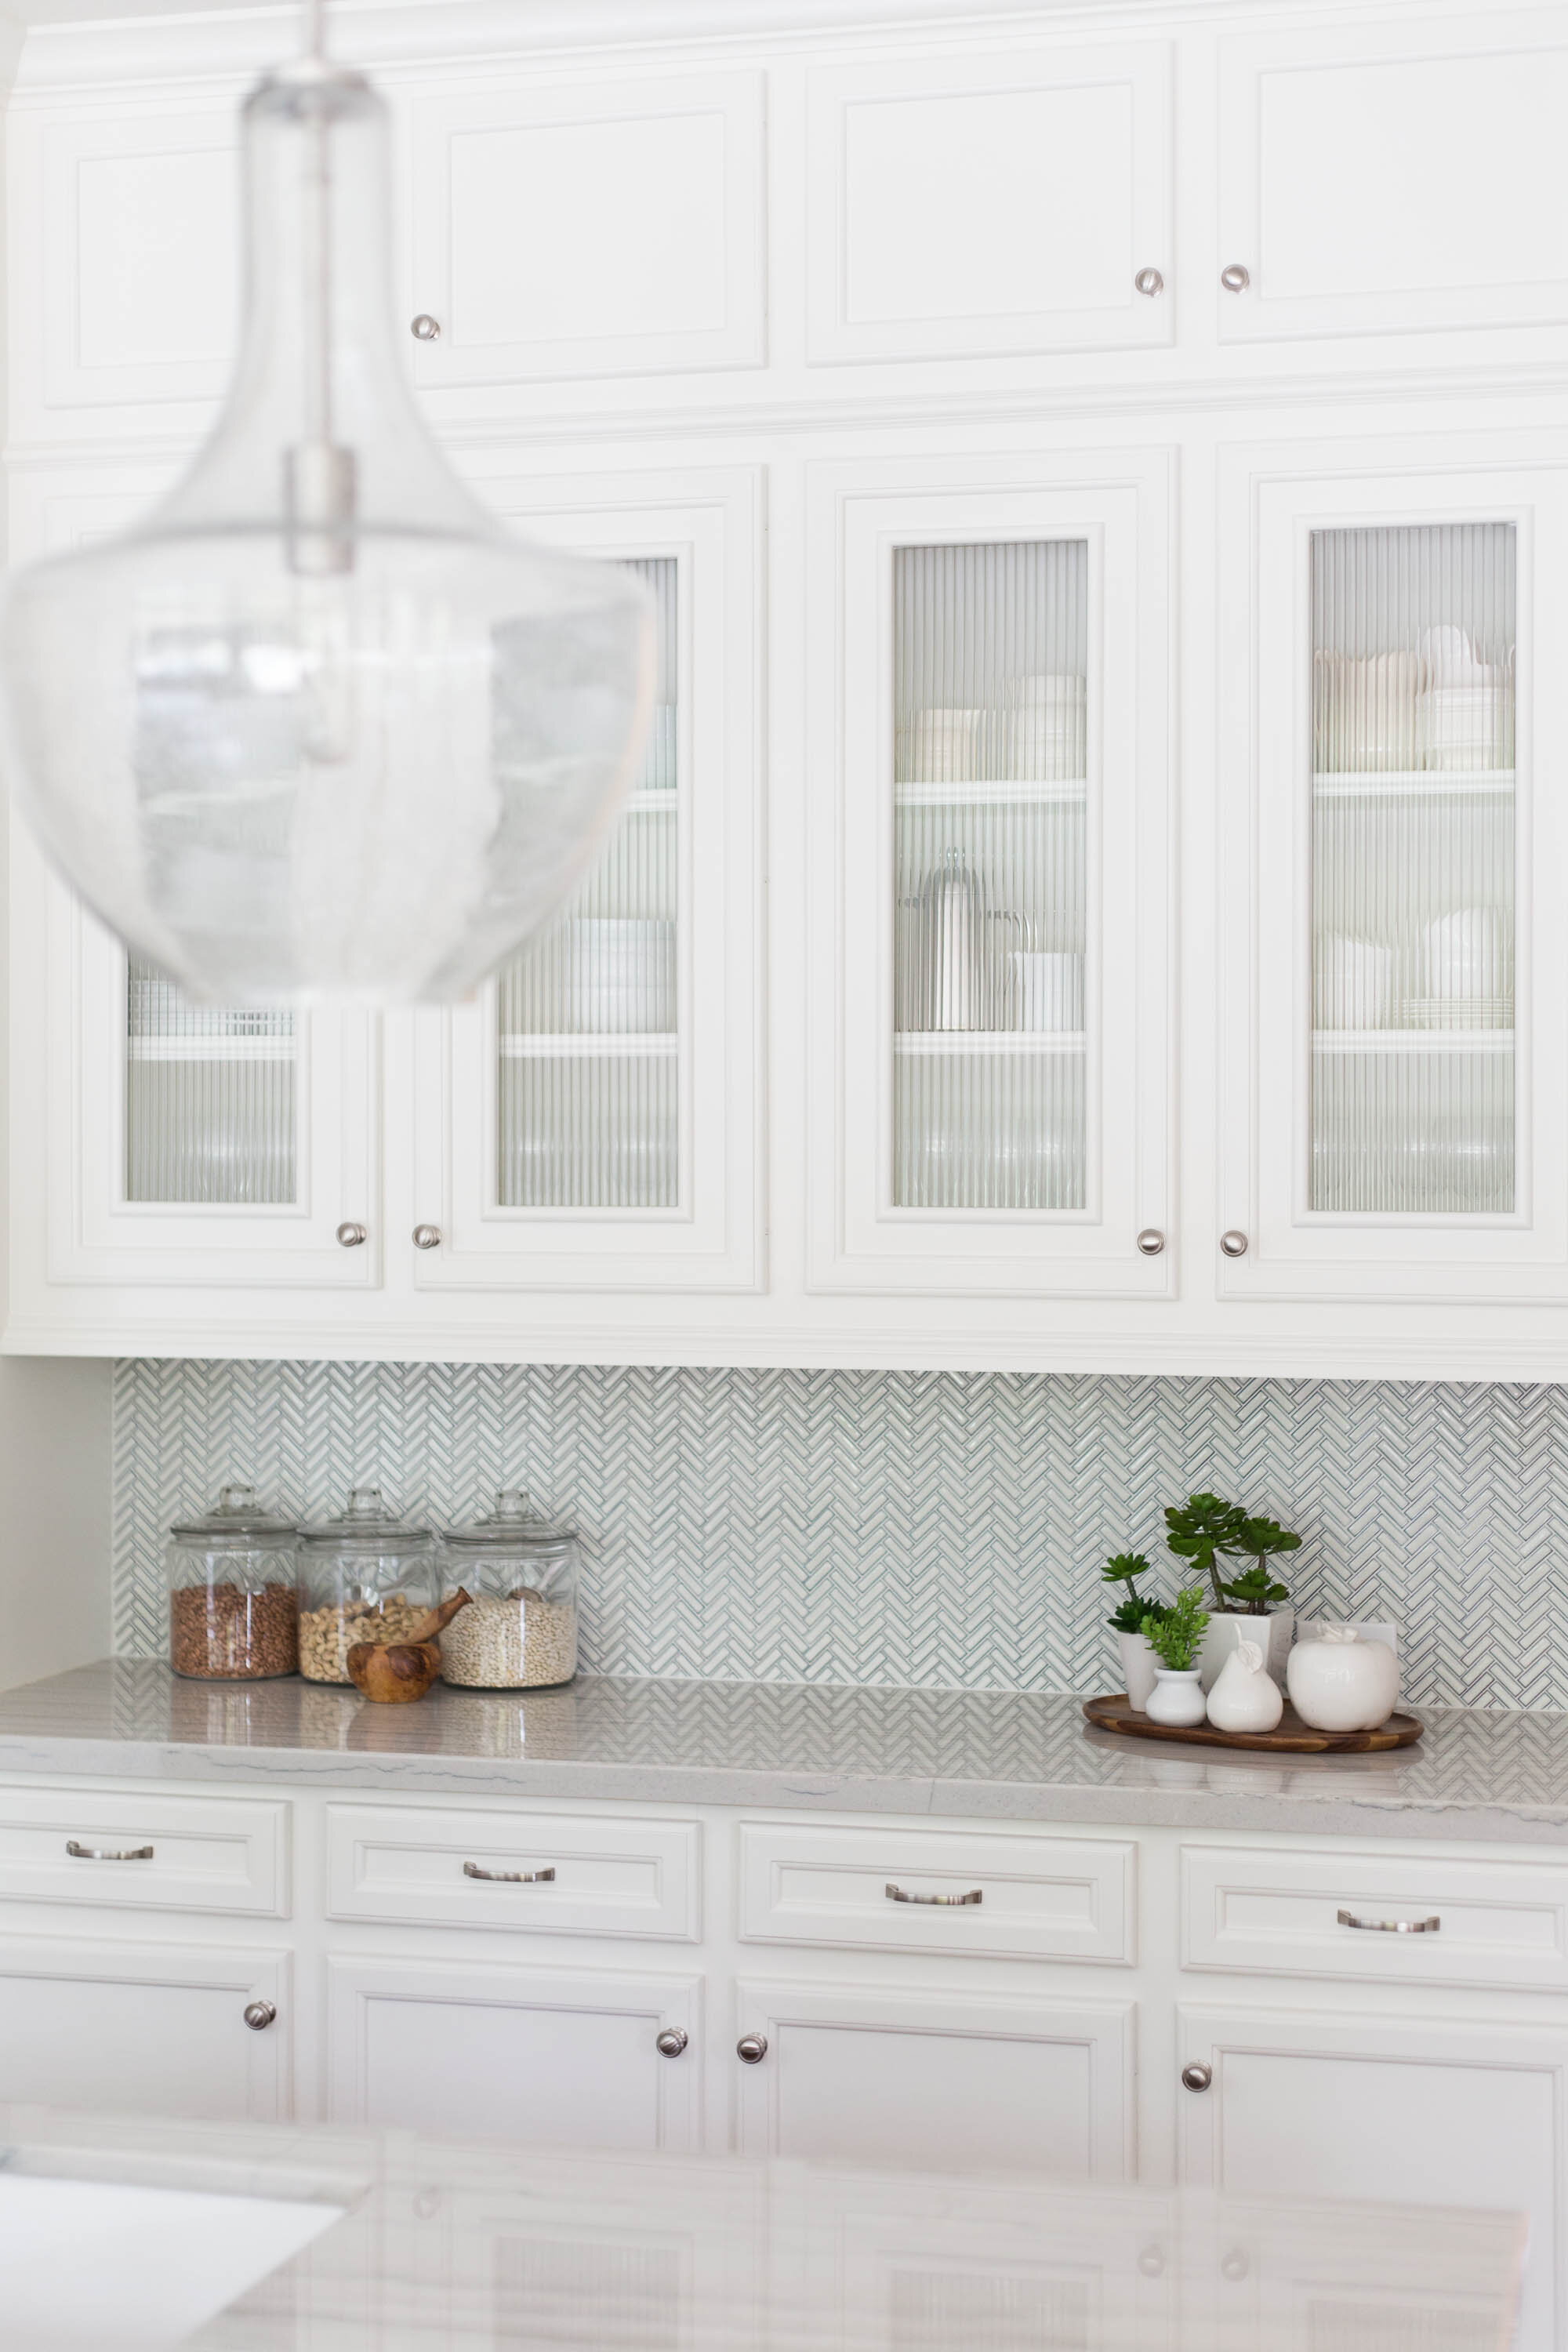 How To Style The Glass Cabinet Doors In Your Kitchen Designed